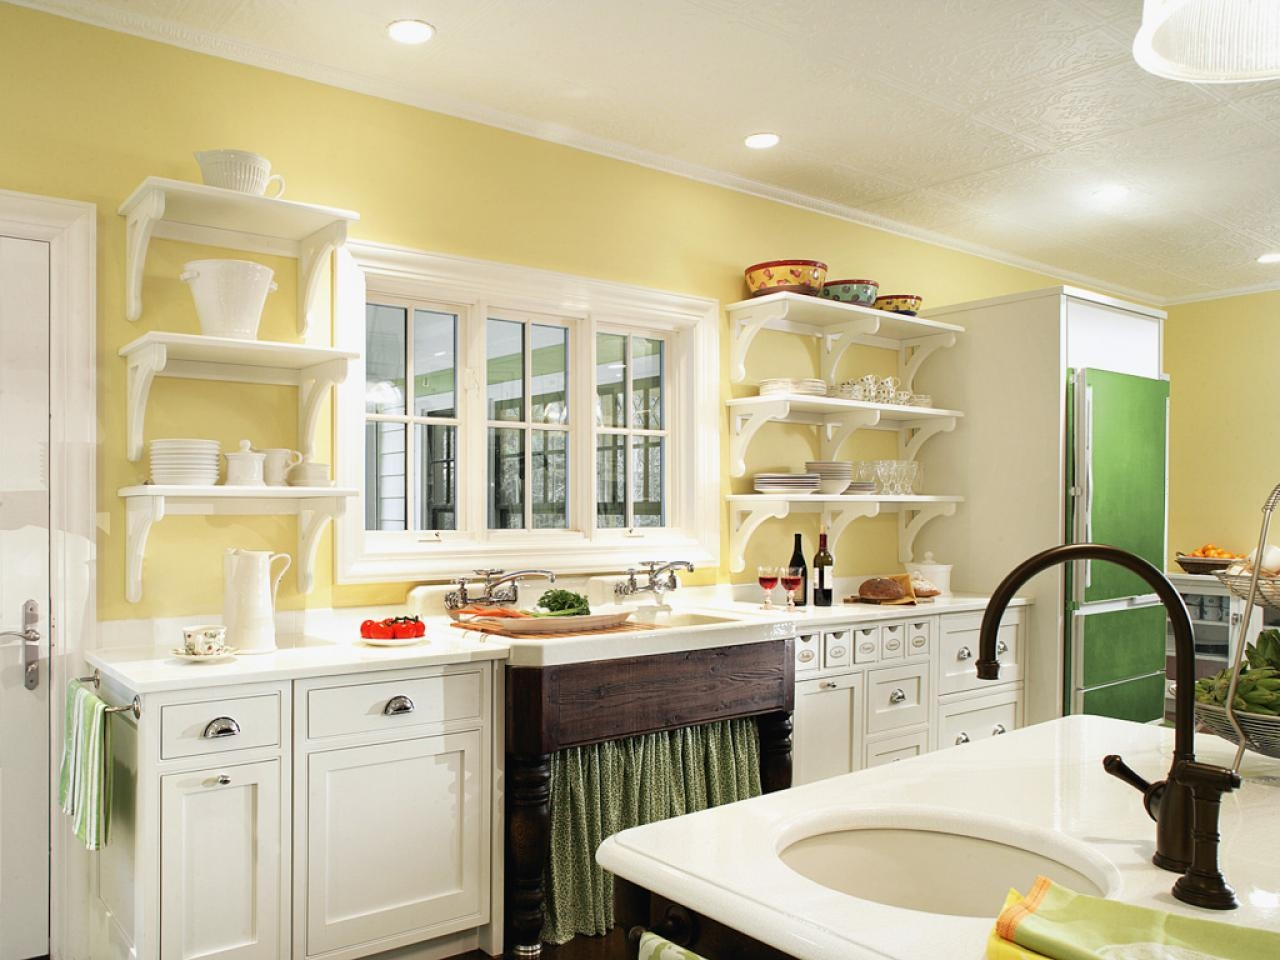 Painted Kitchen Shelves Pictures Ideas Tips From Hgtv Hgtv With Regard To Kitchen Shelves (Image 12 of 15)